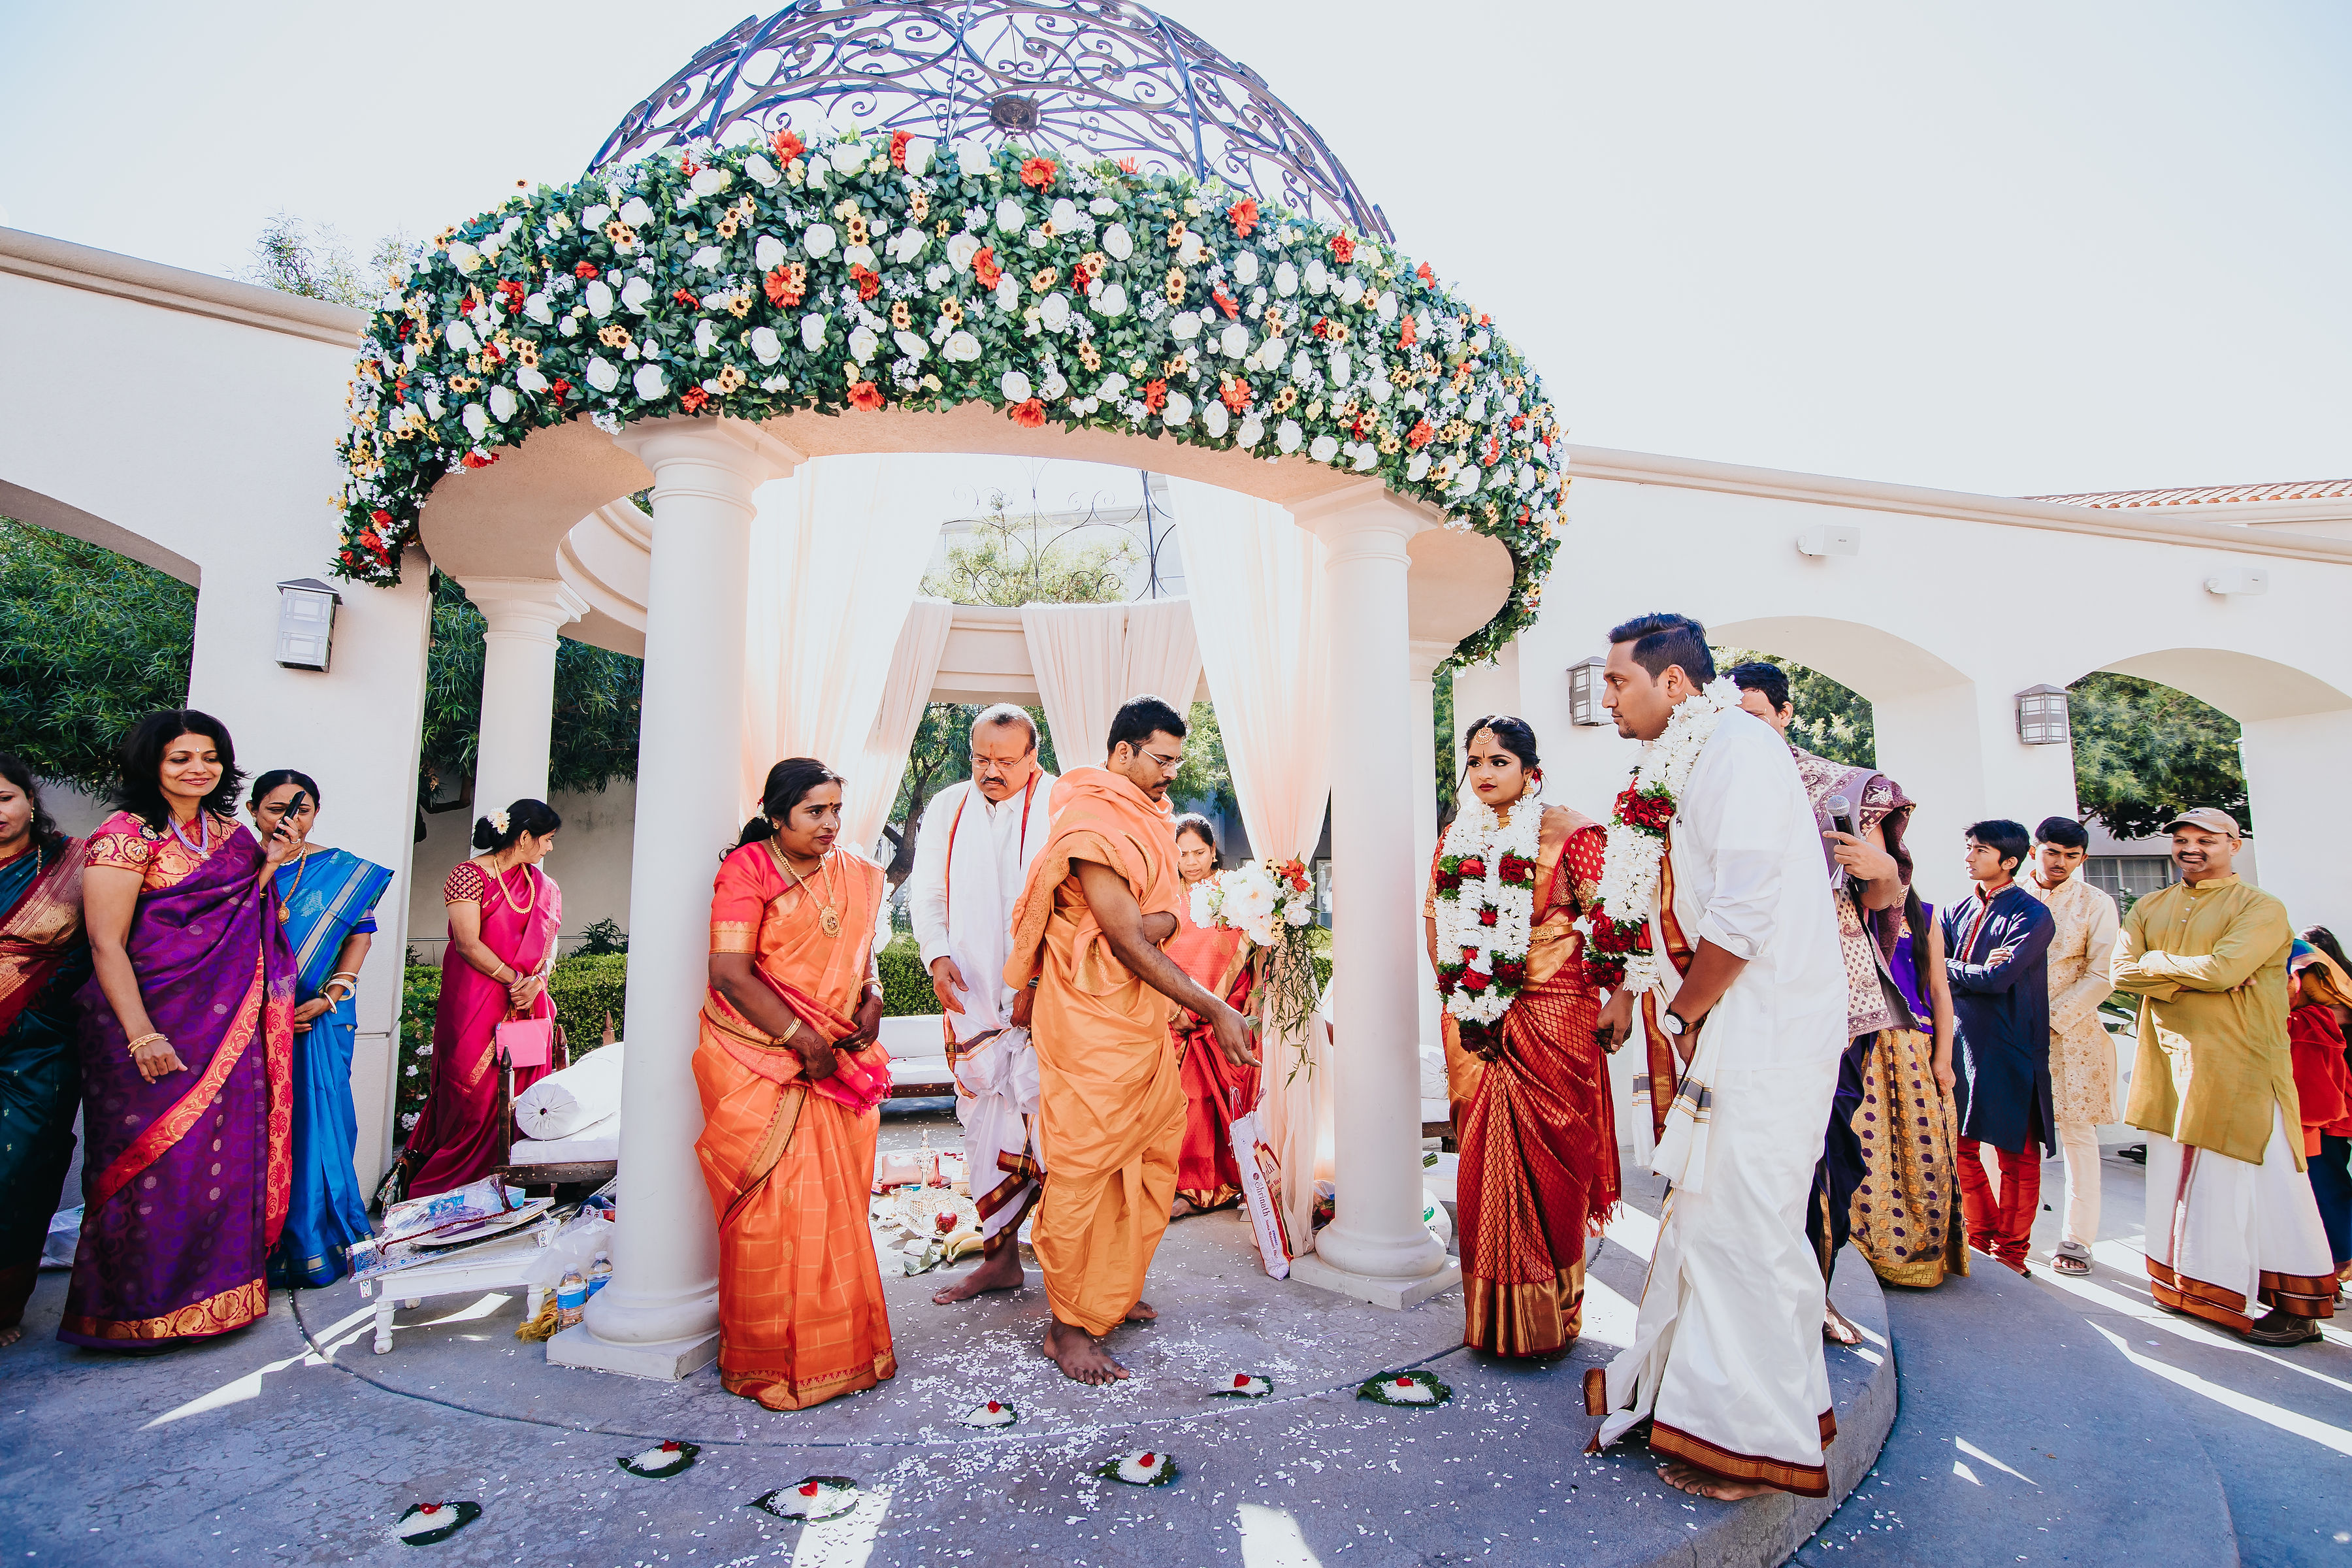 Kiran & Mohan - Ceremony Decorations!